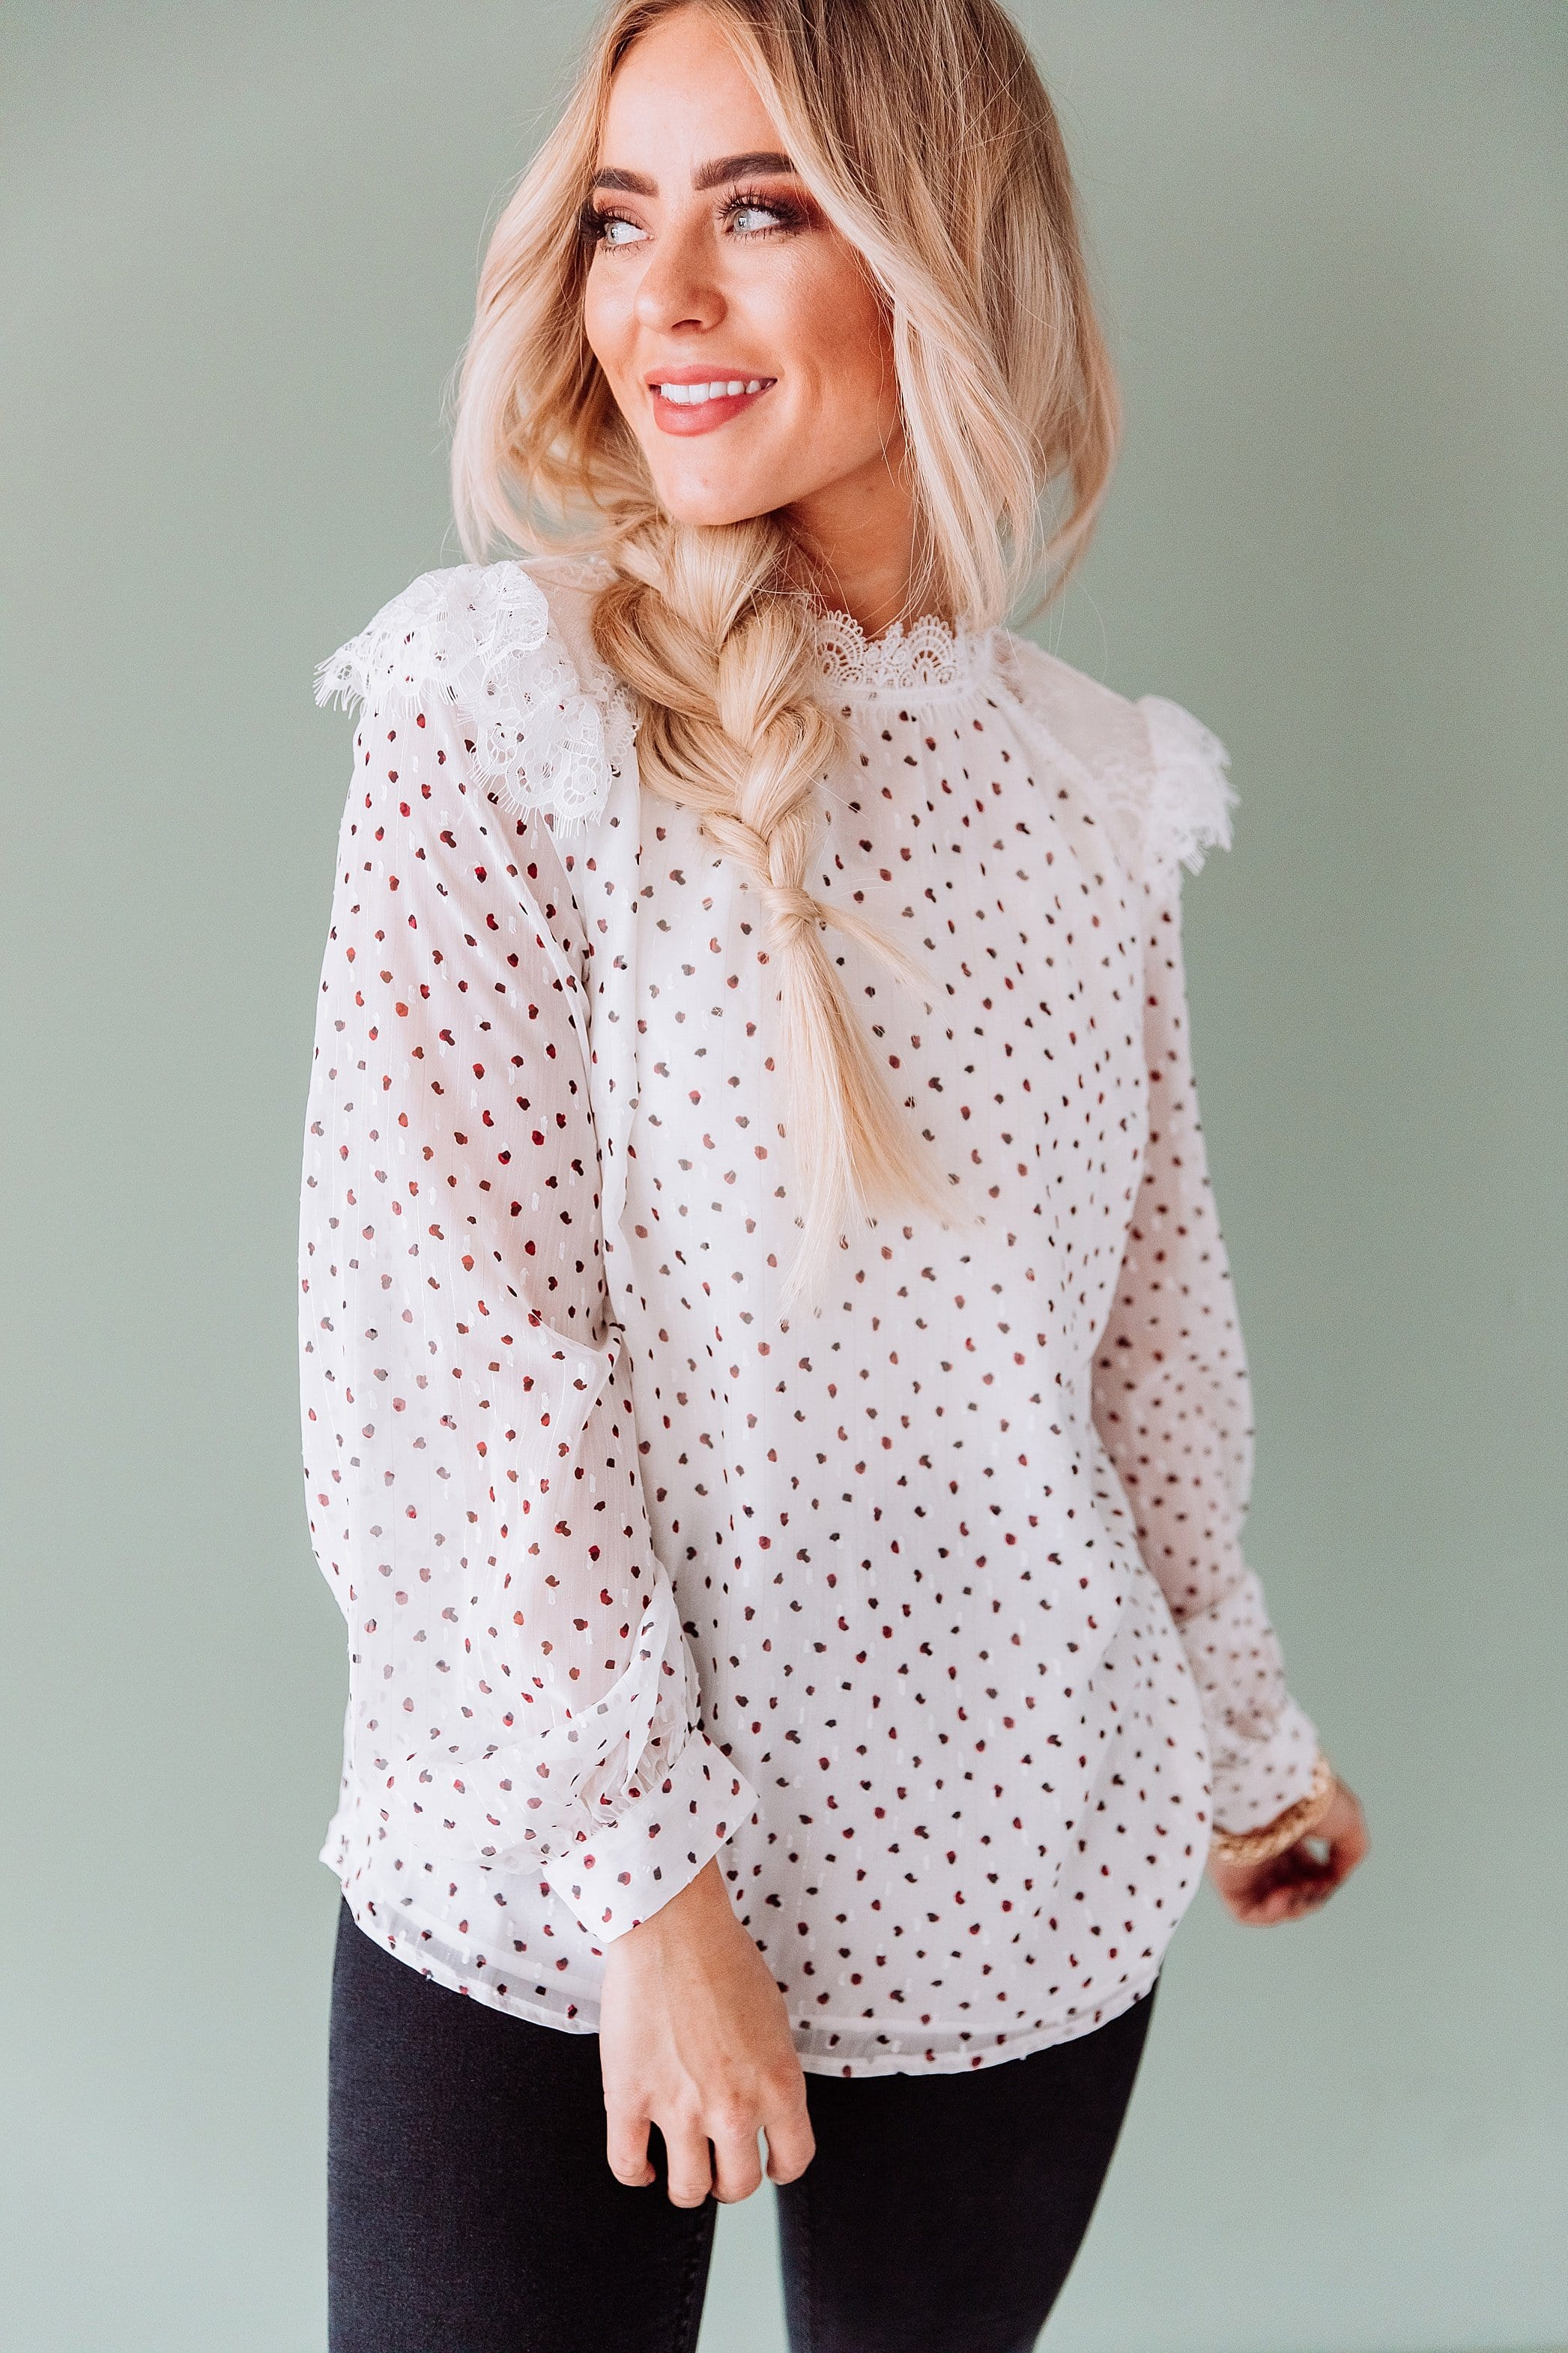 The Hally Lace Top in White